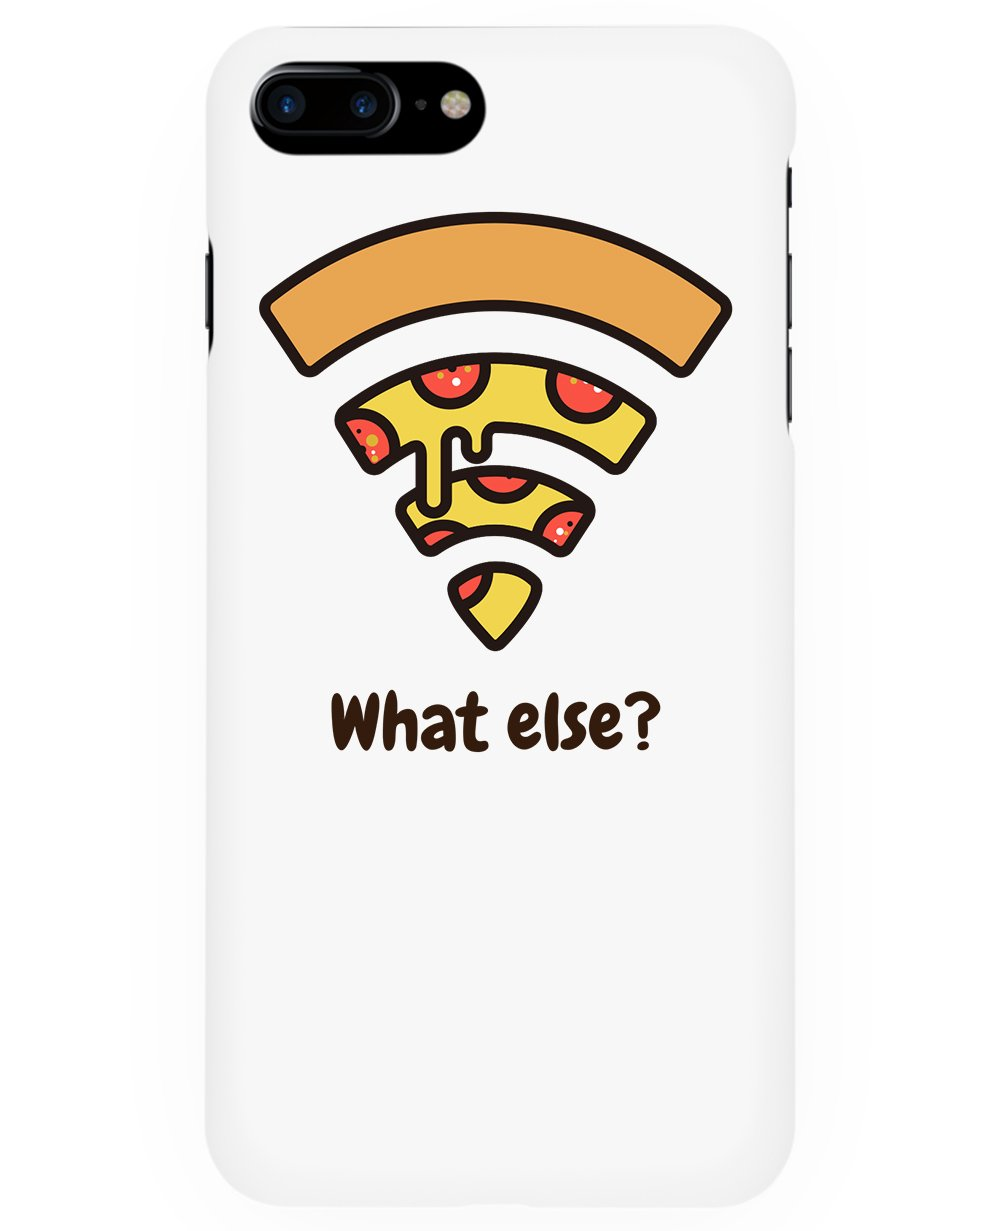 What Else Print Iphone Case - Phone cases - FOOD PORN CLUB - BRANMA